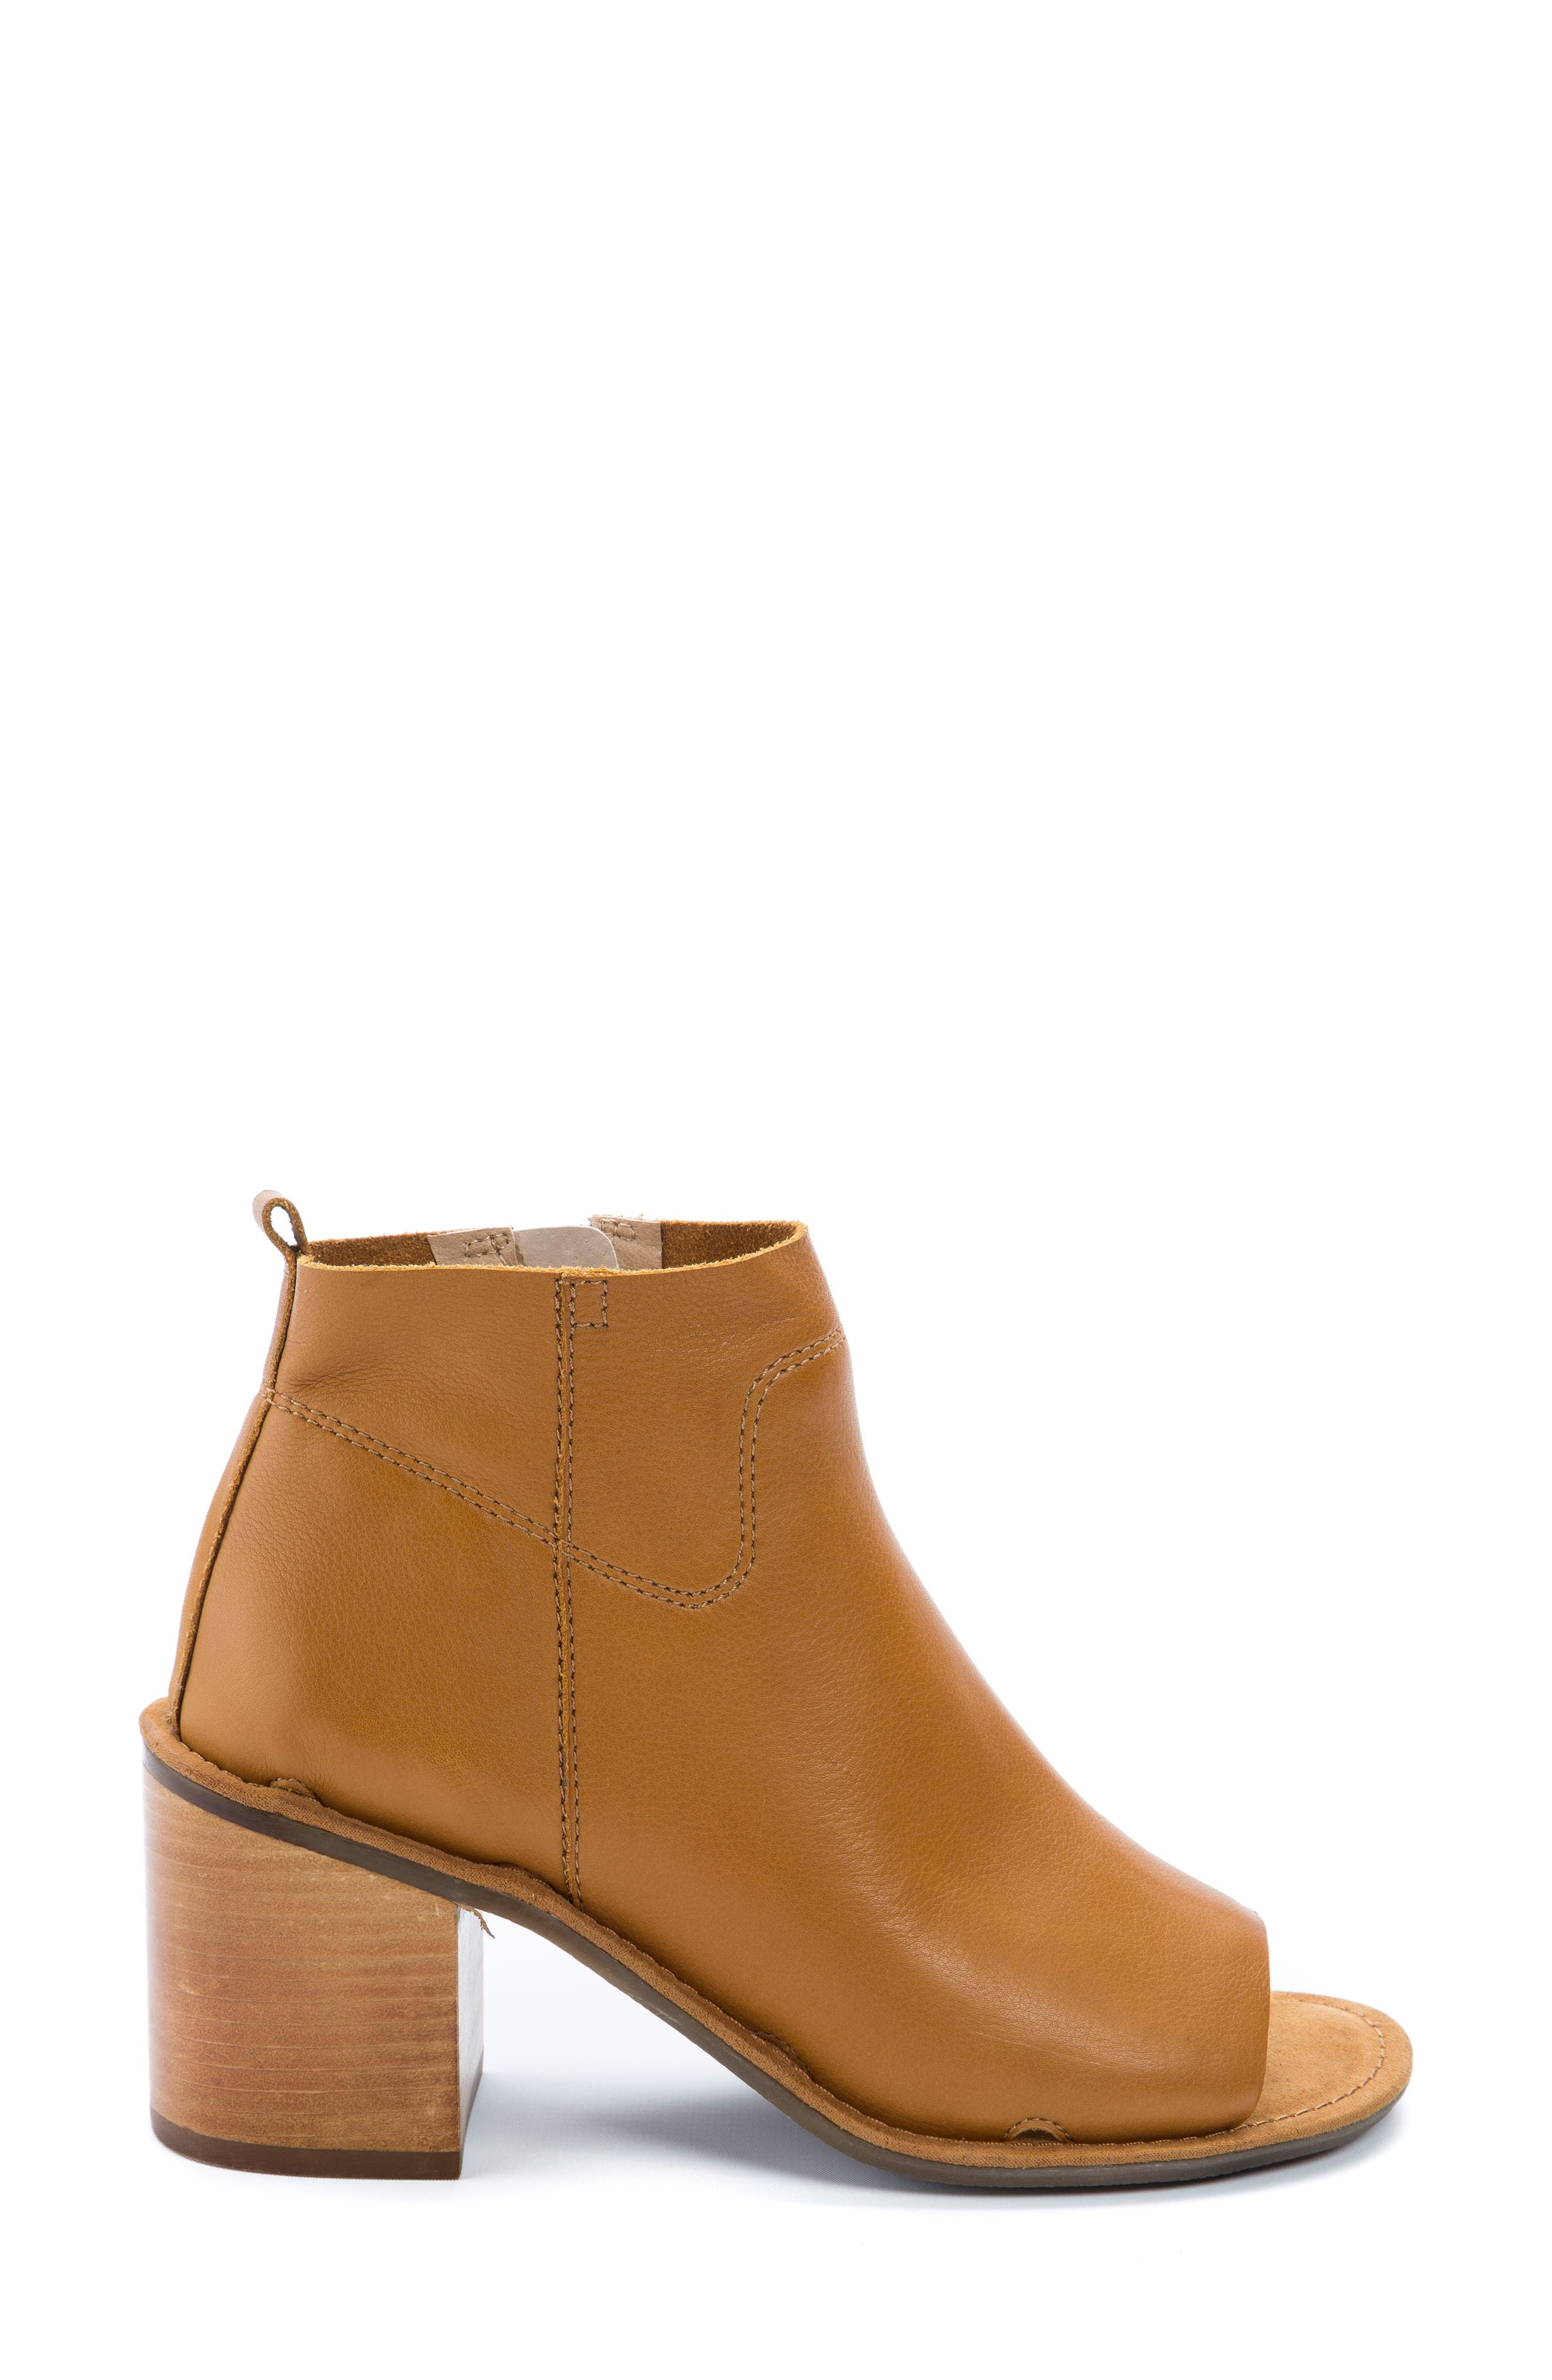 Vivvy Peep Toe Bootie,                             Alternate thumbnail 3, color,                             Amber